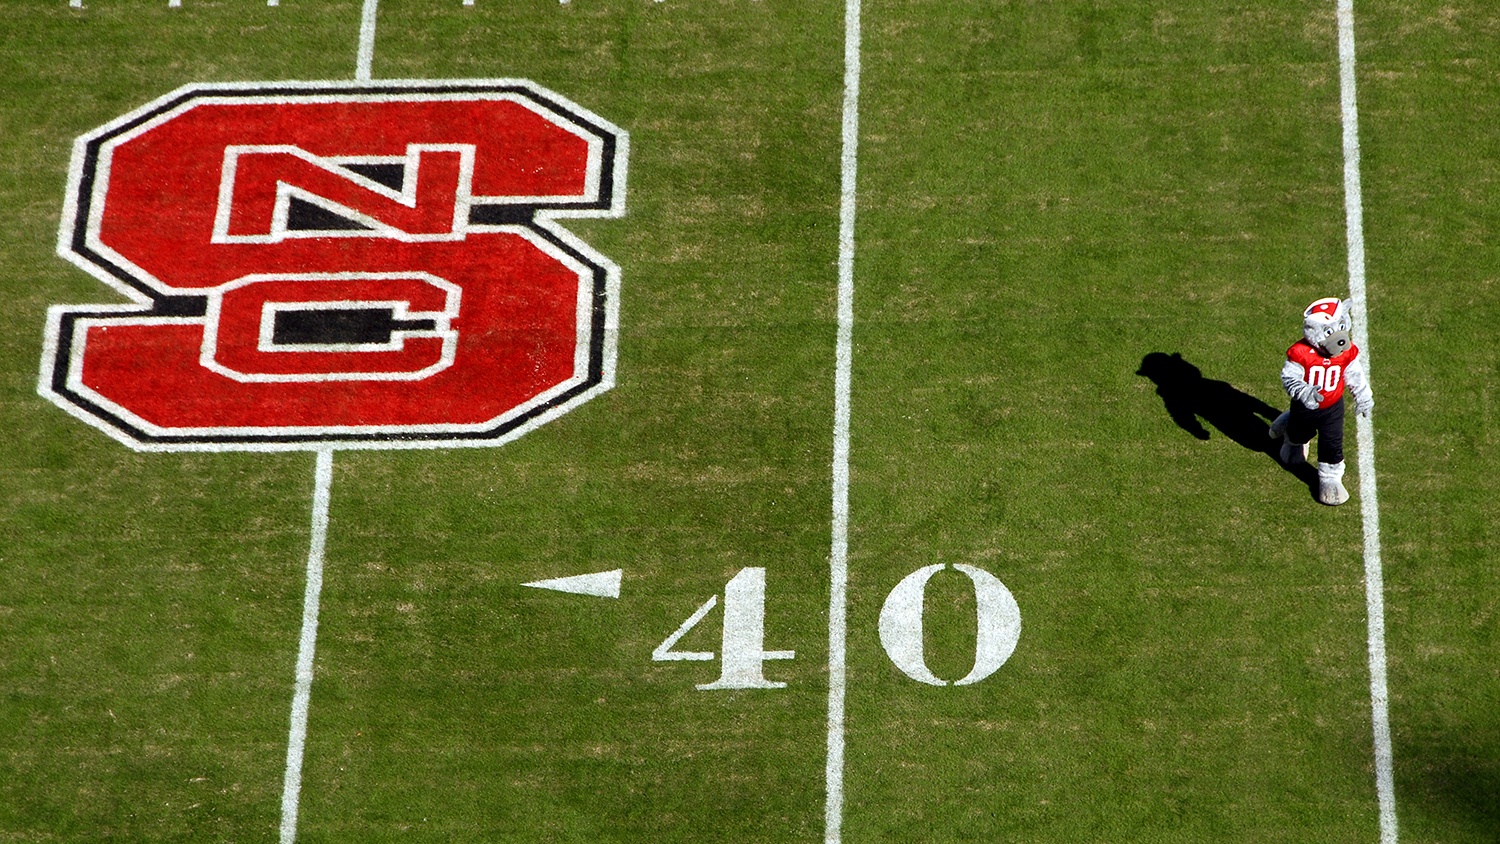 Mr. Wuf struts on the field at Carter-Finley Stadium.